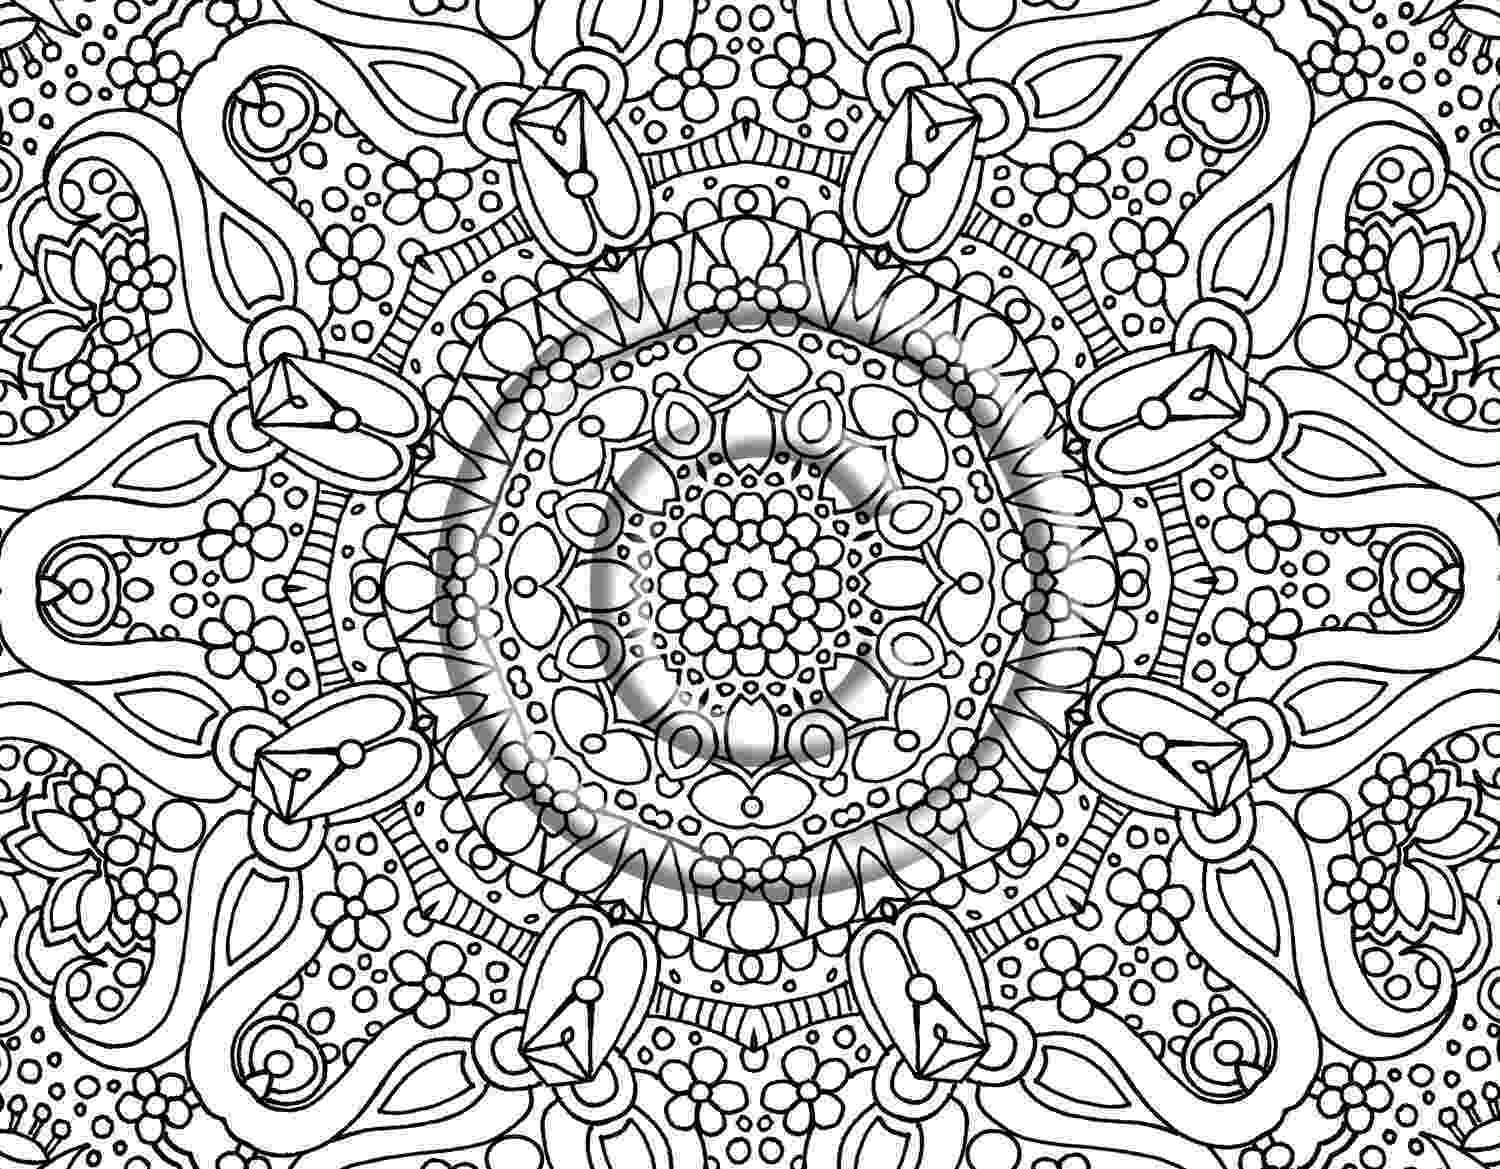 hard design coloring pages hard design coloring pages getcoloringpagescom coloring pages design hard